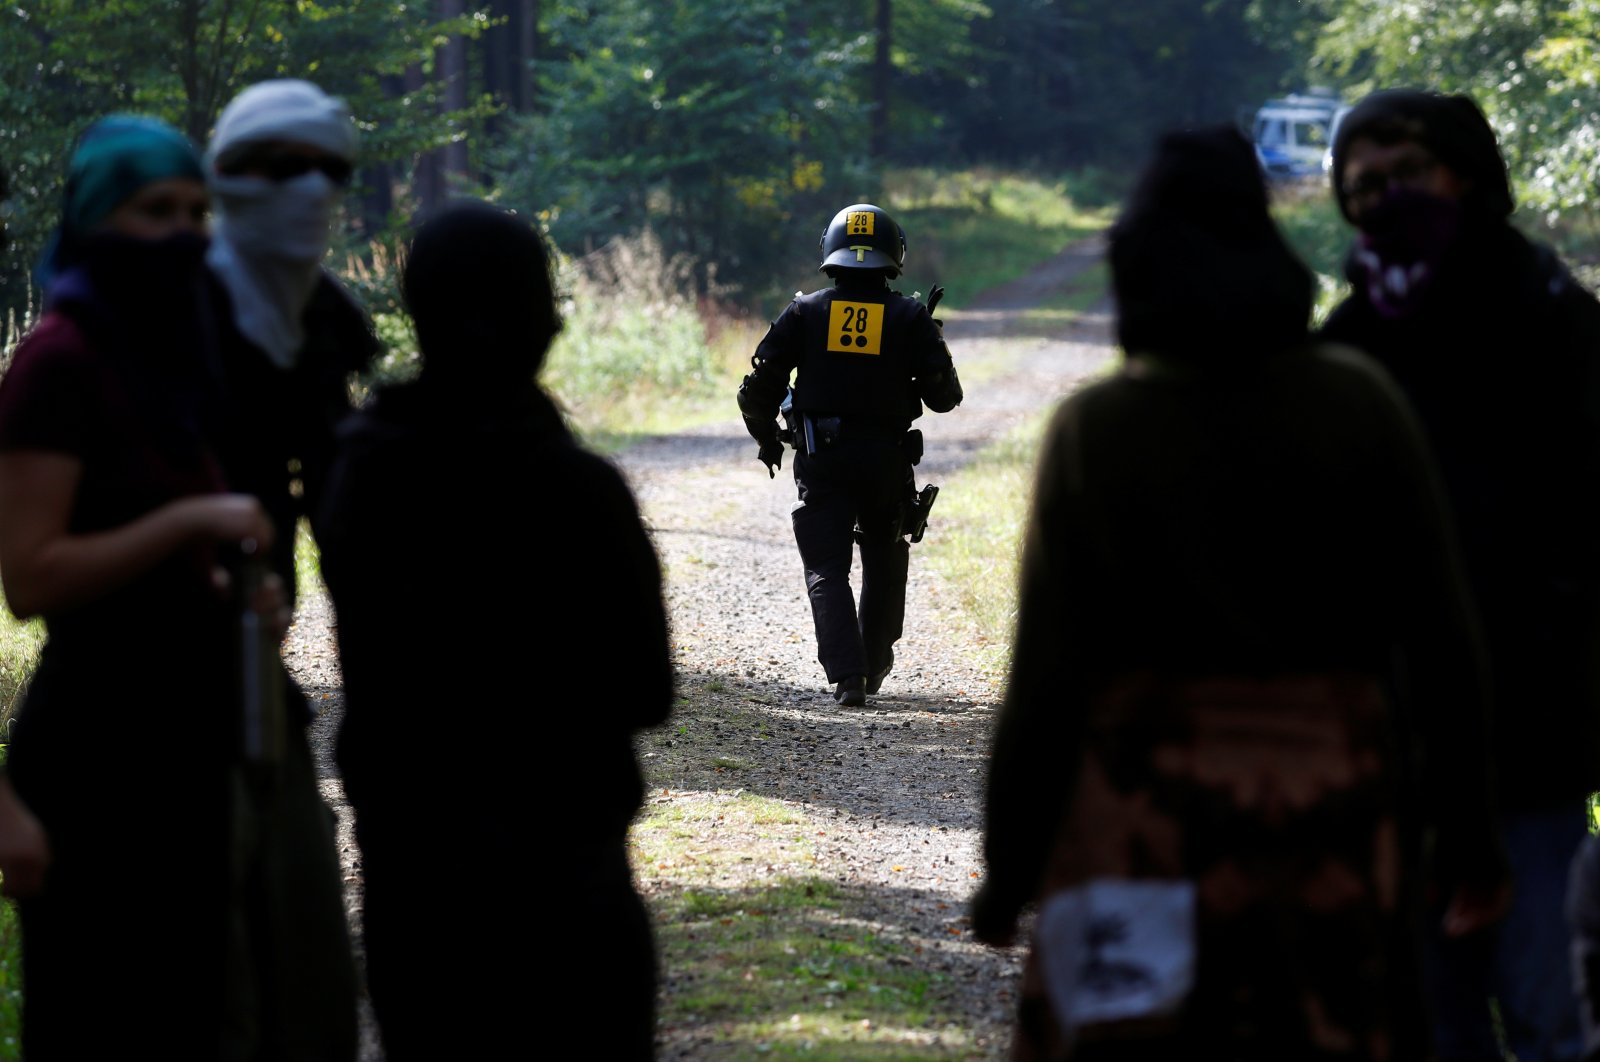 A police officer walks as the police and forest workers clear a camp at the Dannenrod forest during a protest of environmentalists against the extension of the highway Autobahn 49, in Dannenrod, Germany, Sept. 16, 2020. (Reuters Photo)